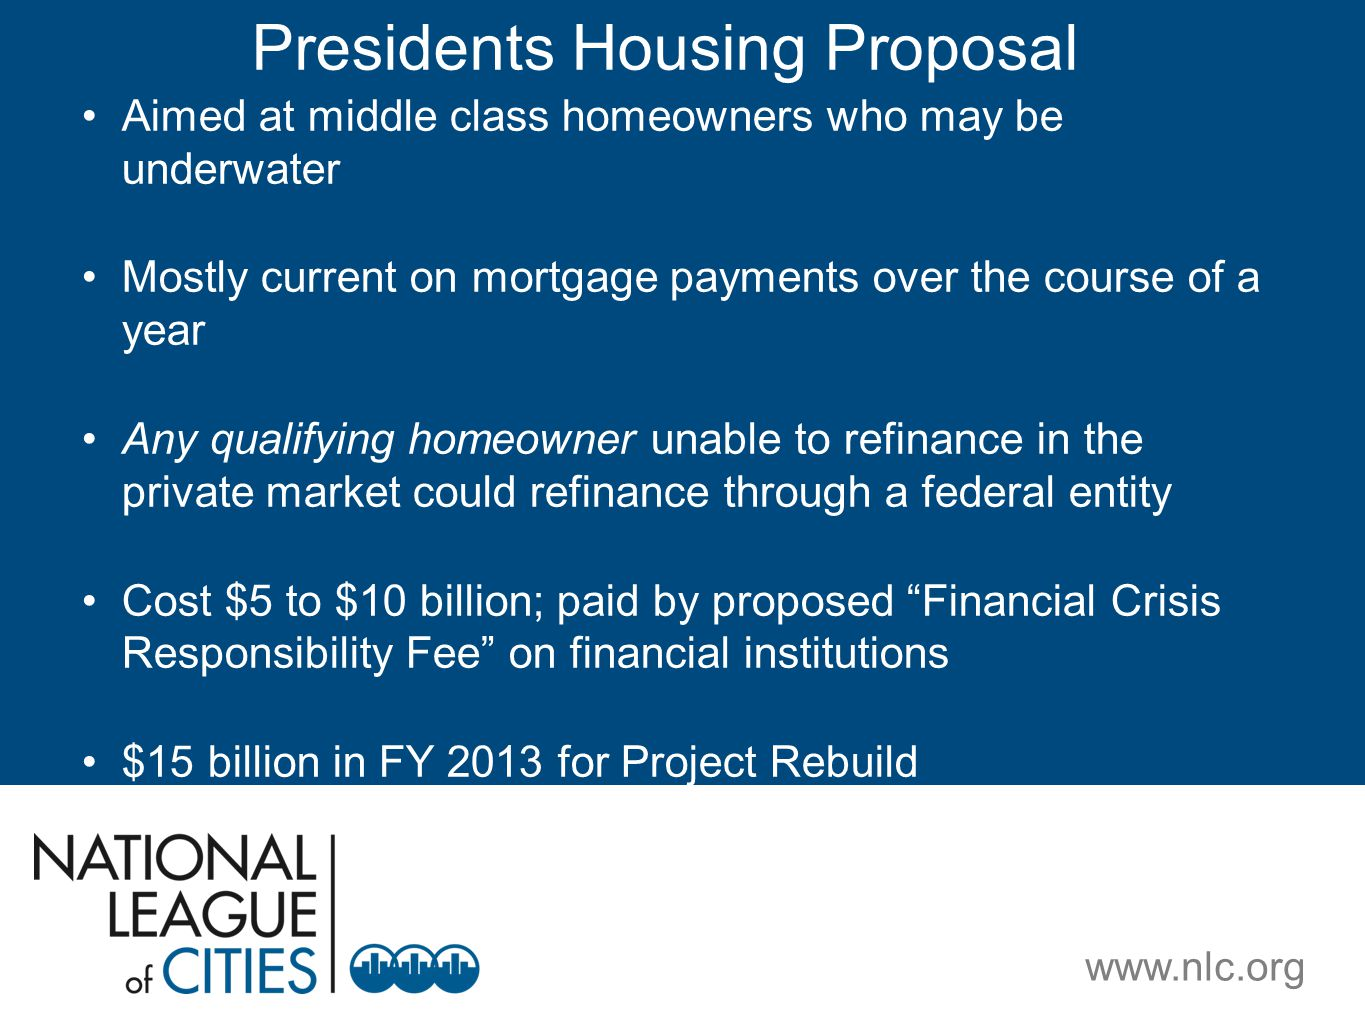 www.nlc.org Presidents Housing Proposal Aimed at middle class homeowners who may be underwater Mostly current on mortgage payments over the course of a year Any qualifying homeowner unable to refinance in the private market could refinance through a federal entity Cost $5 to $10 billion; paid by proposed Financial Crisis Responsibility Fee on financial institutions $15 billion in FY 2013 for Project Rebuild